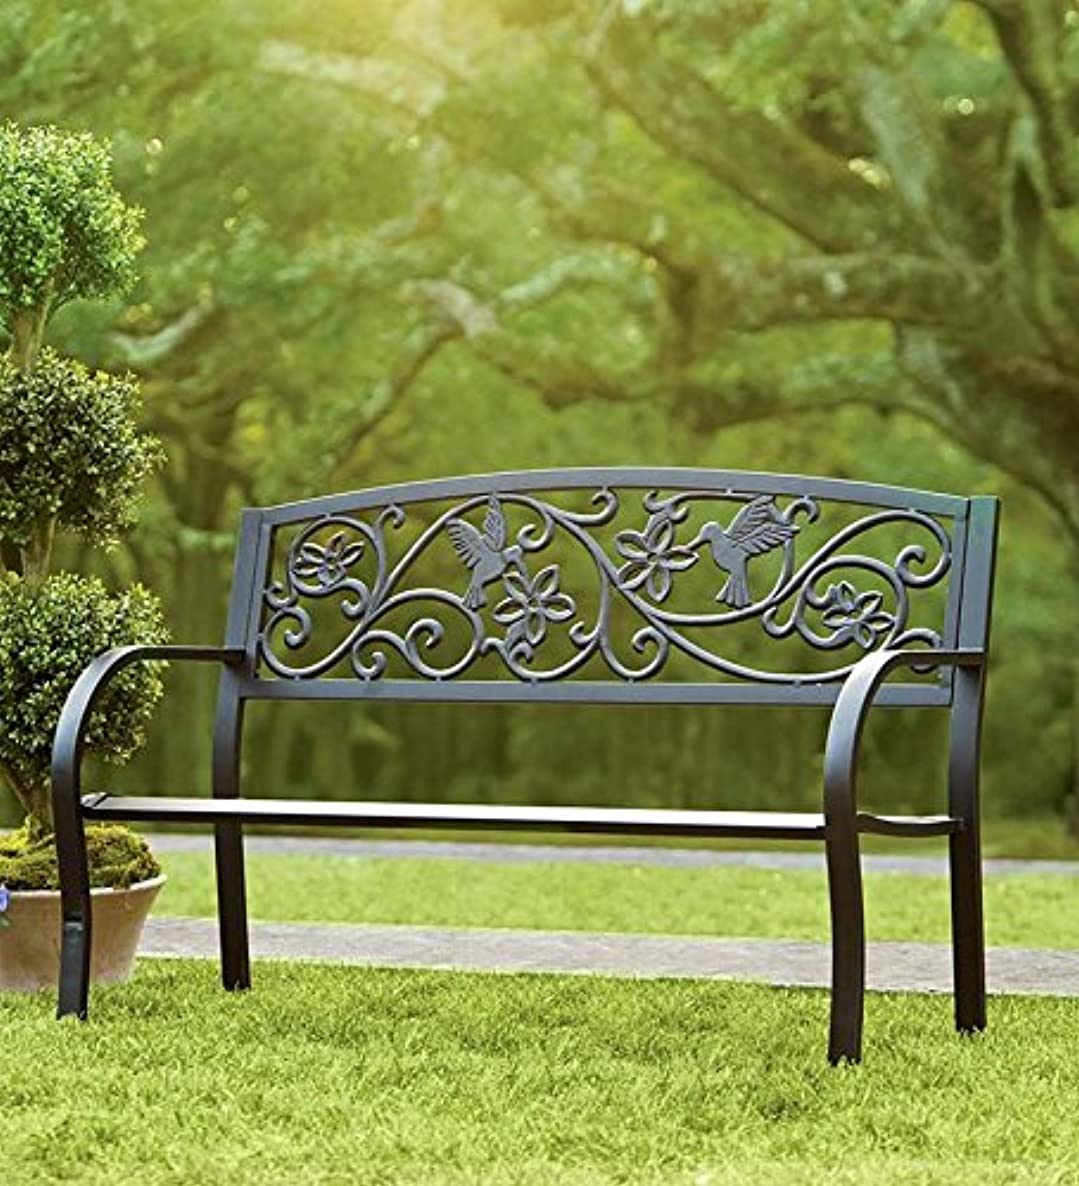 Hummingbird Patio Garden Bench Park Yard Outdoor Furniture, Detailed Decorative Design with Vines and Flowers, Classic Black Finish, Easy Assembly, 50 L x 17 1/2 W x 34 1/2 H